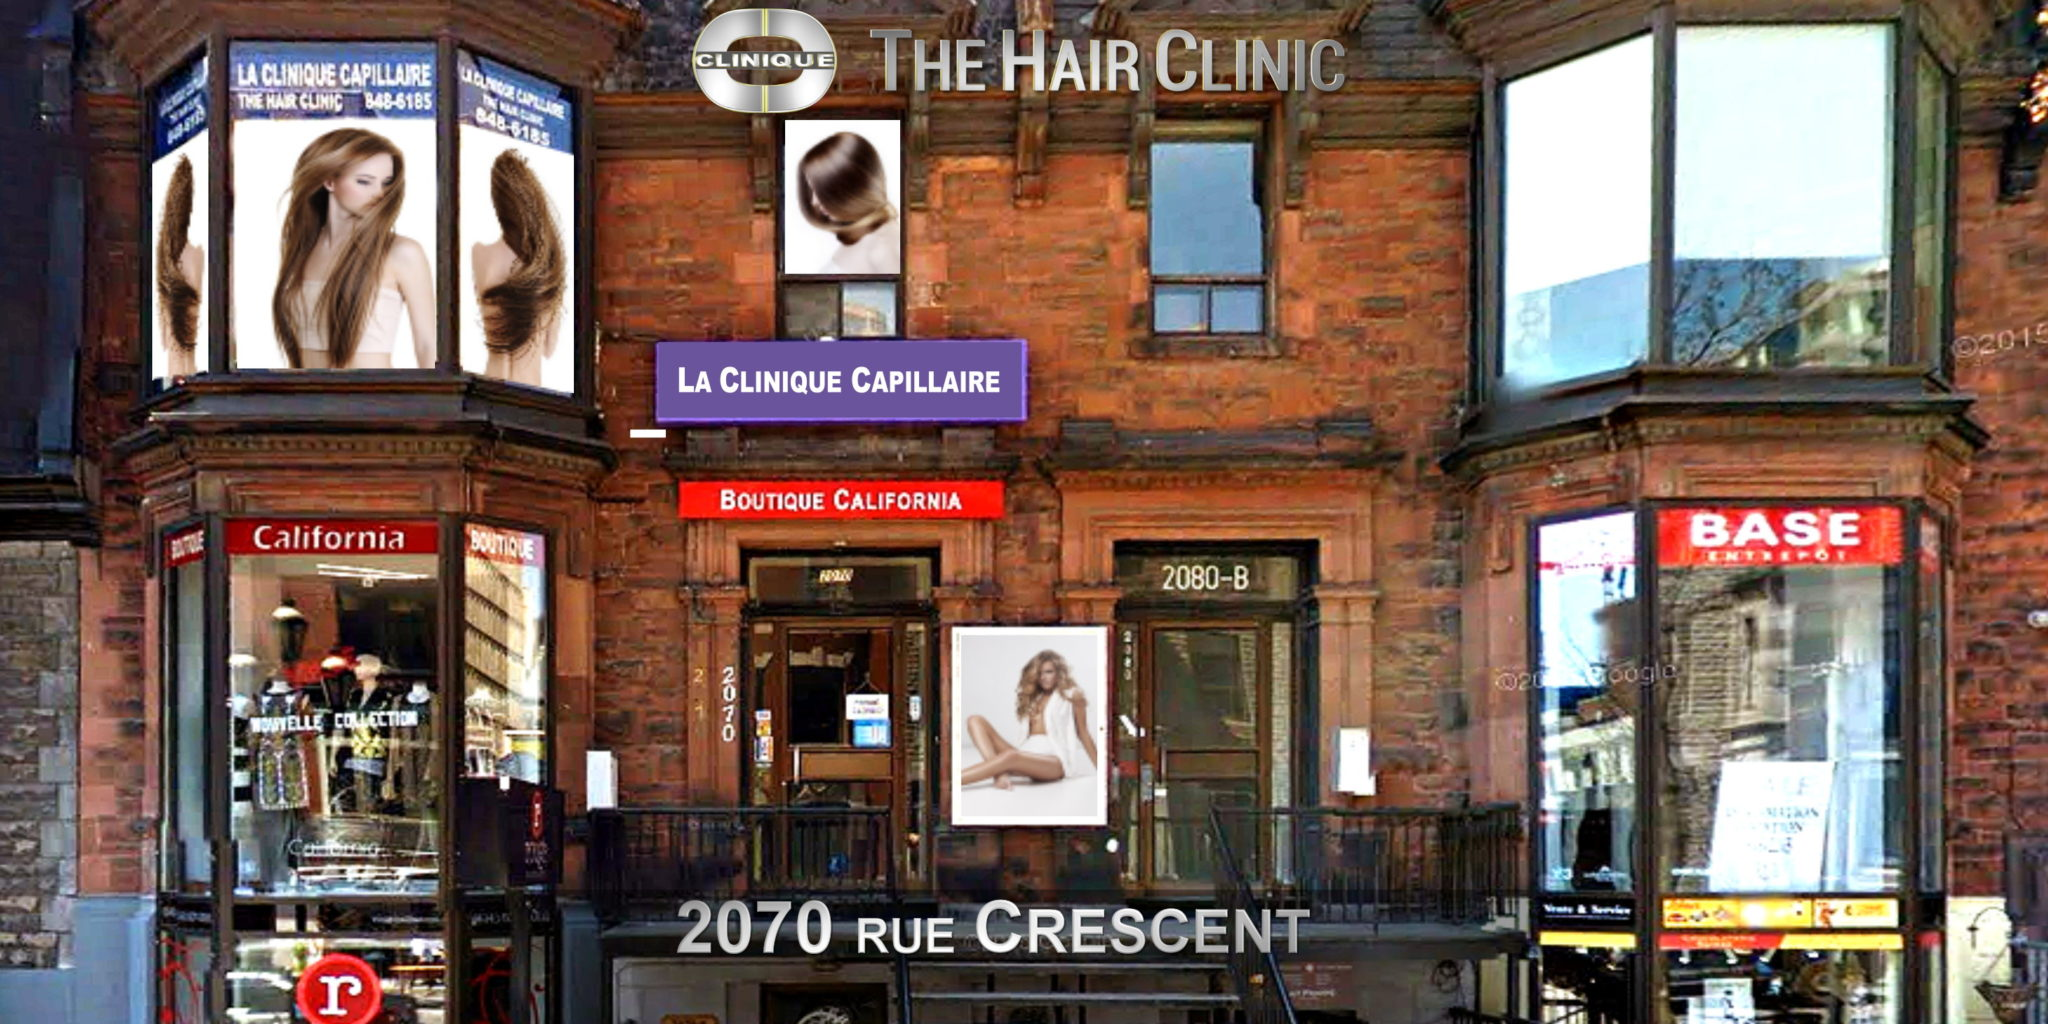 Contact The Hair Clinic Montreal 2070 Crescent at 514-848-6185